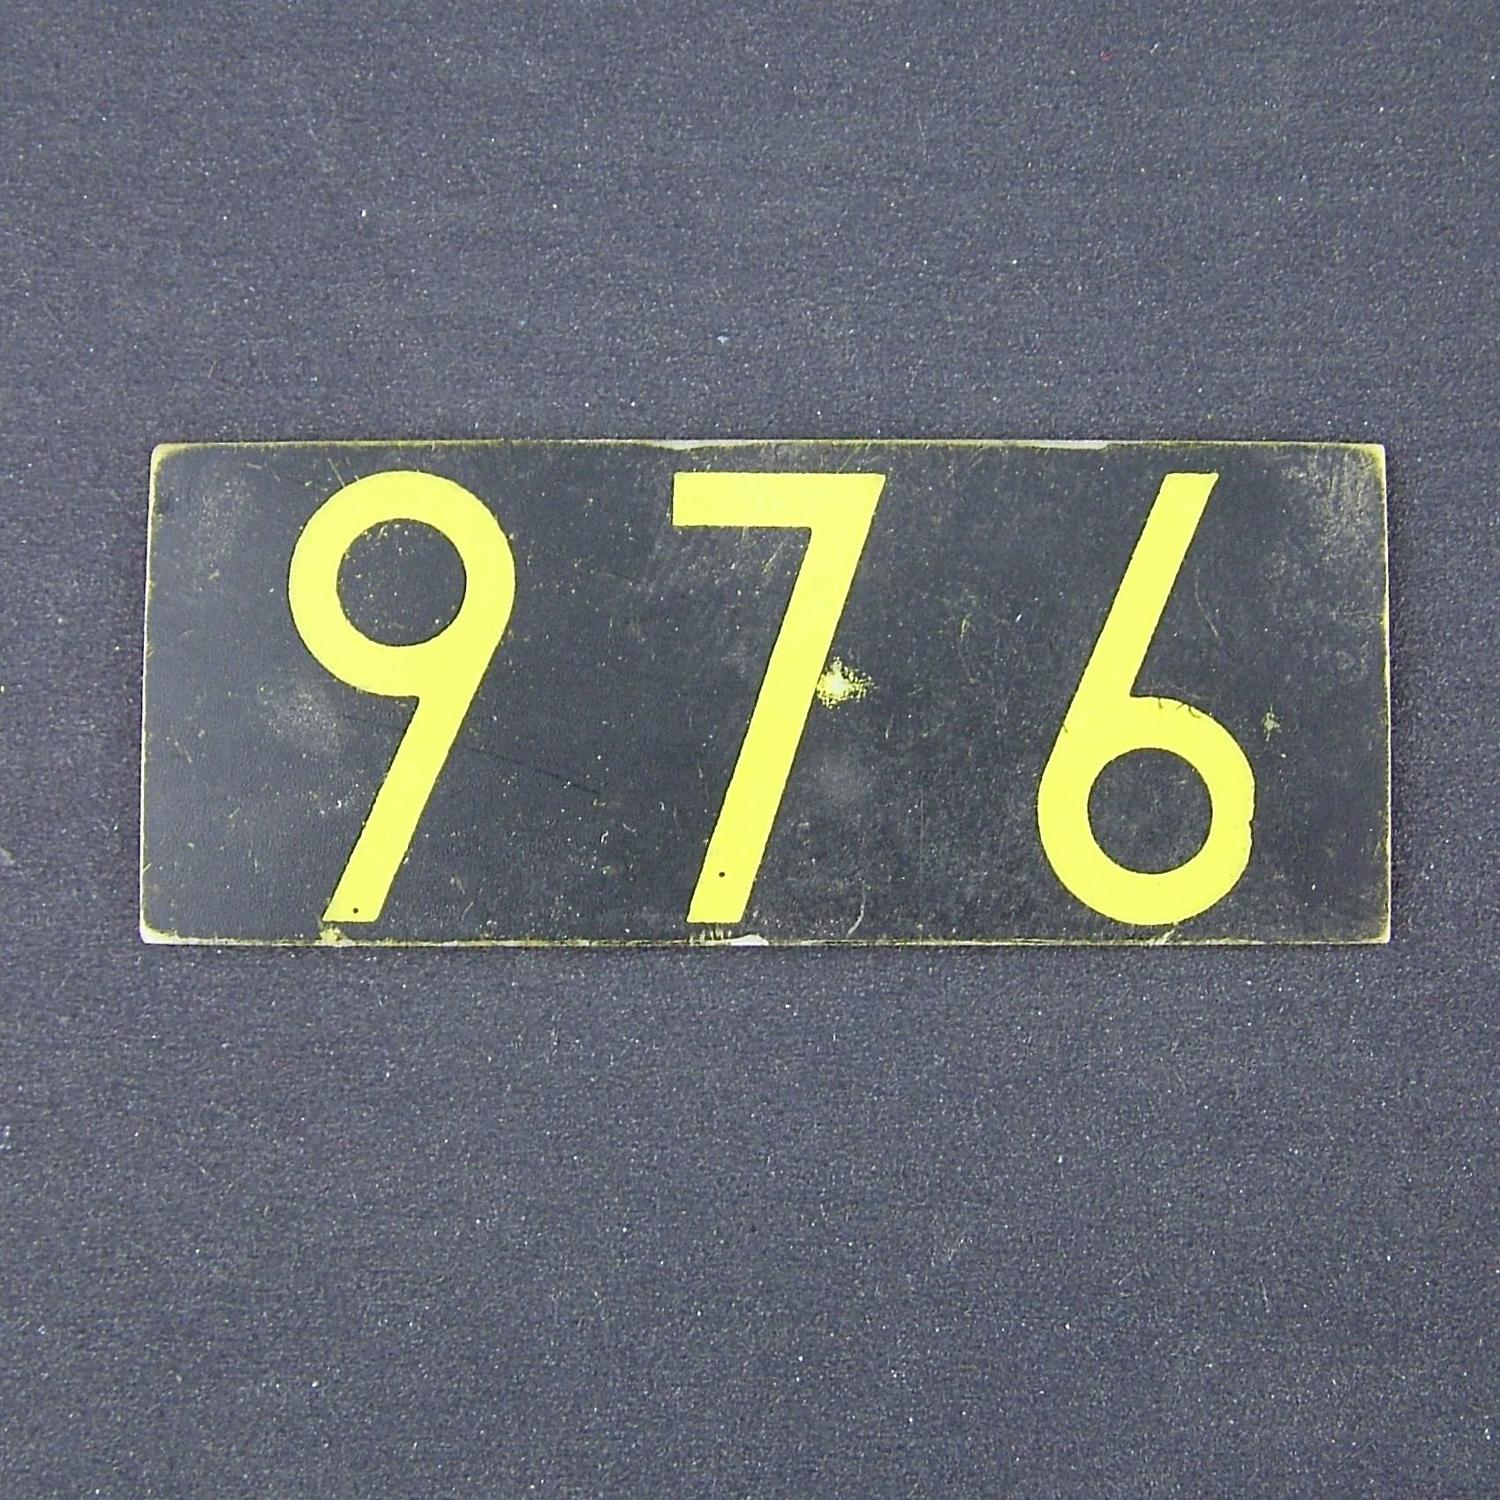 RAF operations room raid block tile '976'